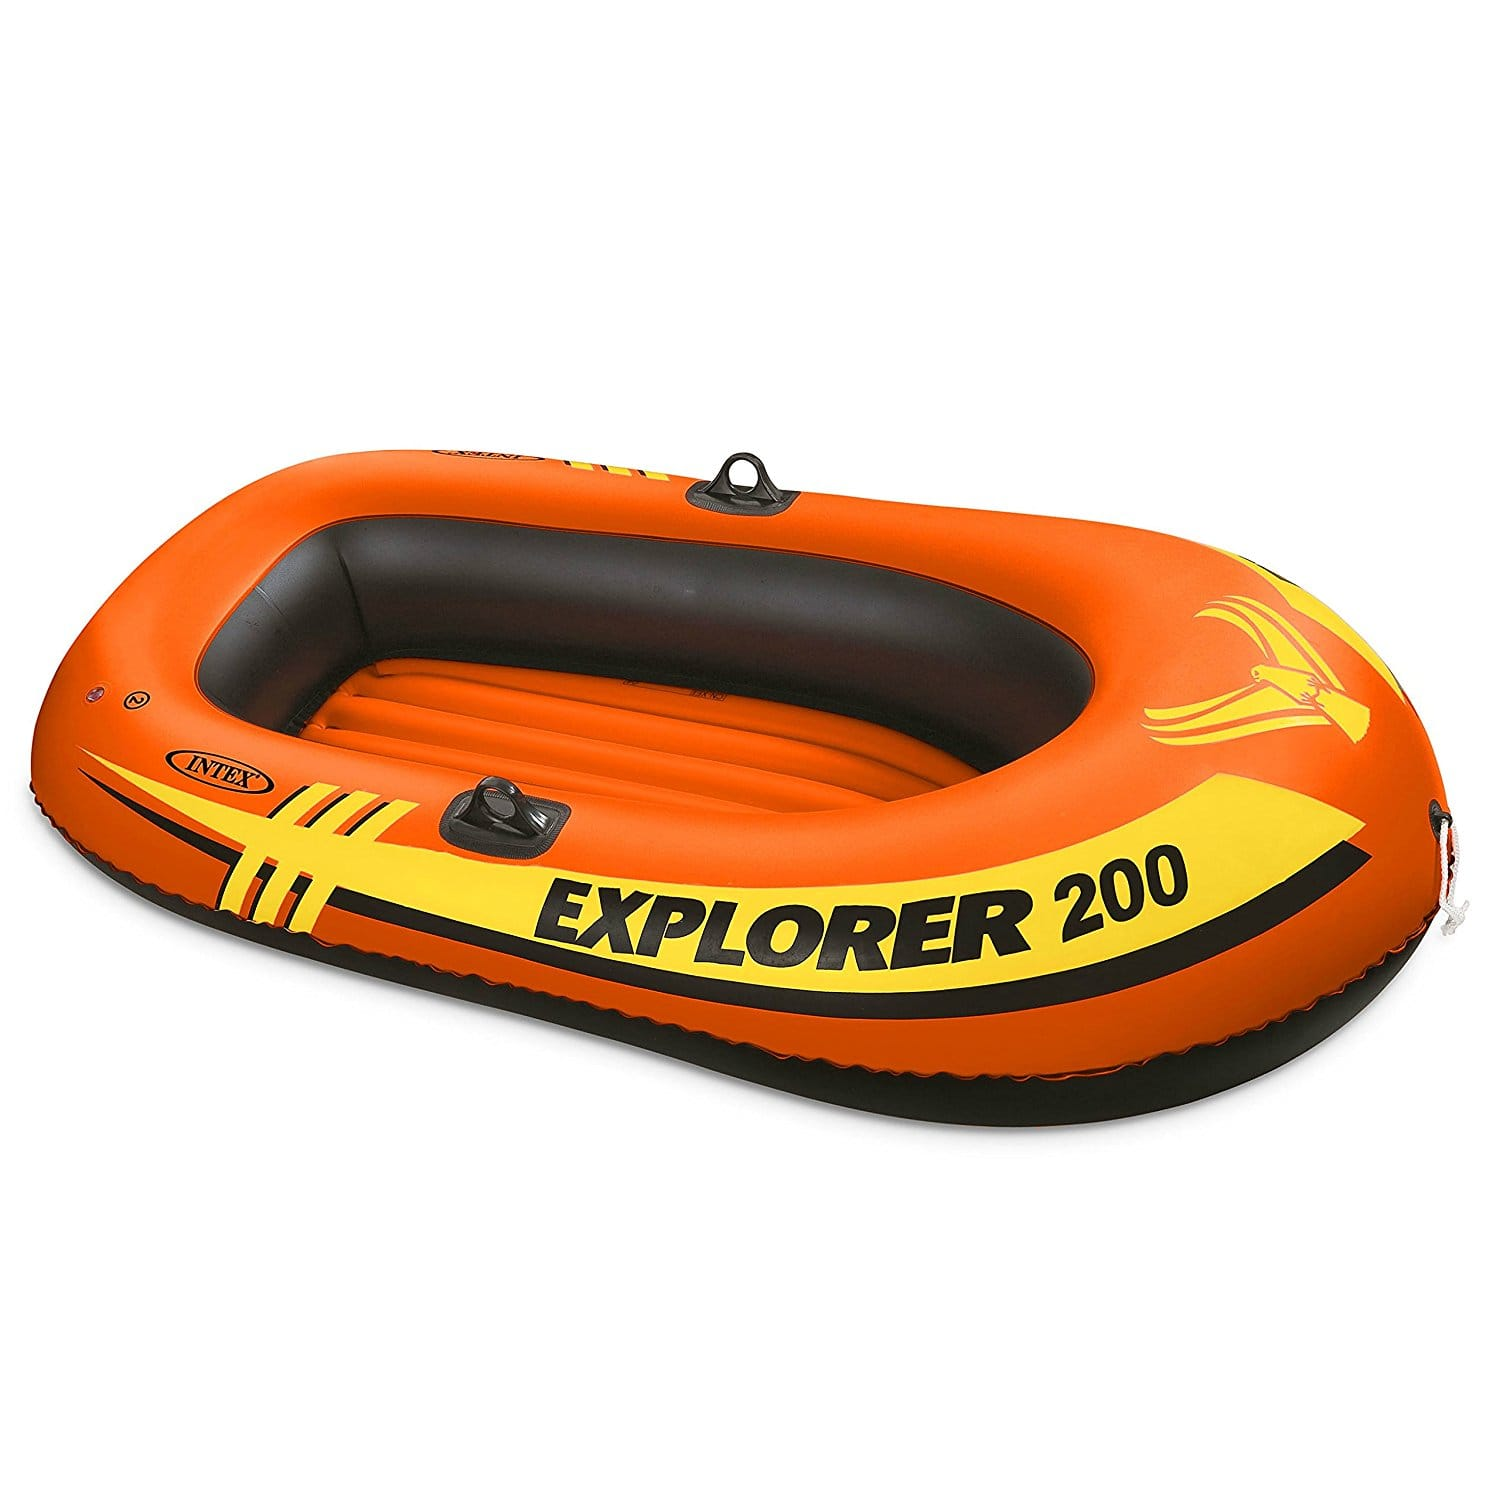 Amazon has the Intex Explorer 200, 2-Person Inflatable Boat for $9.78 (Add on Item) Previous FP Deal